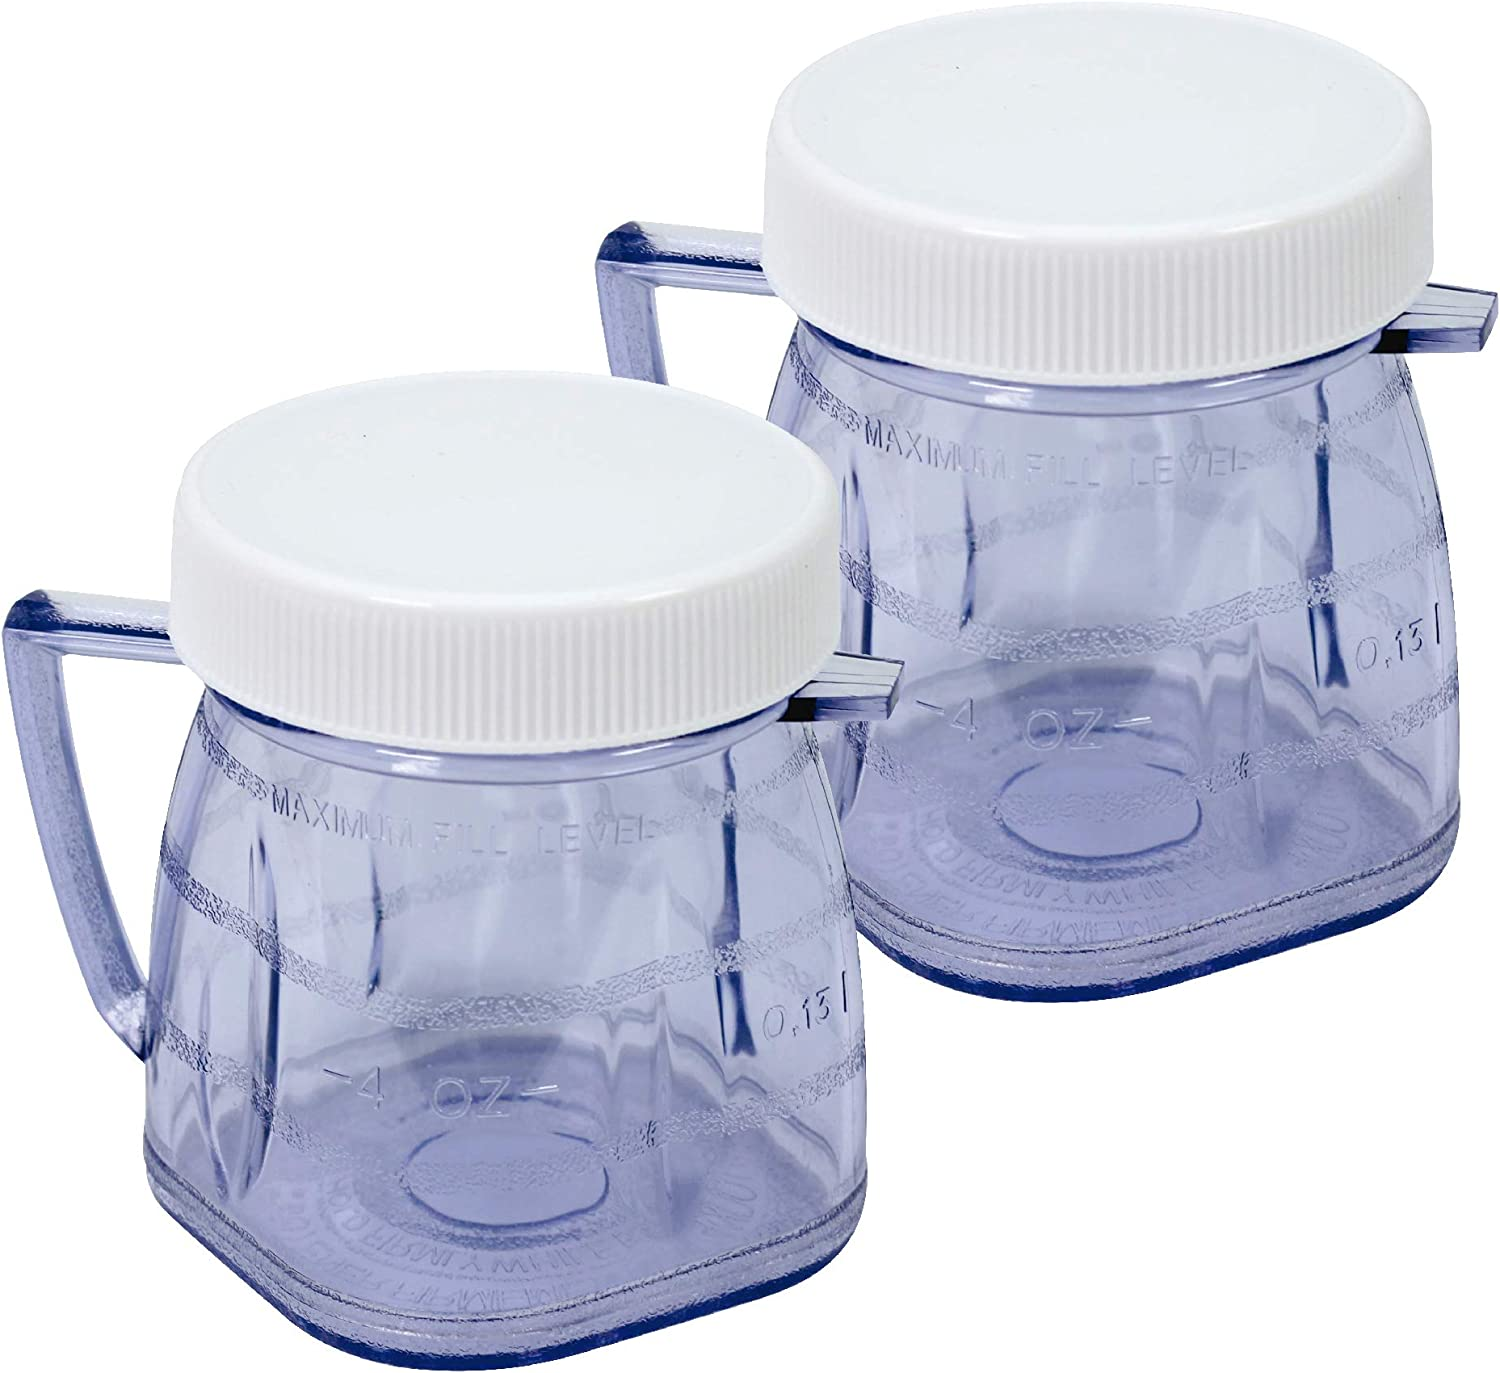 Mini 1-cup Plastic Jar for Oster Blender ((2) Pieces)